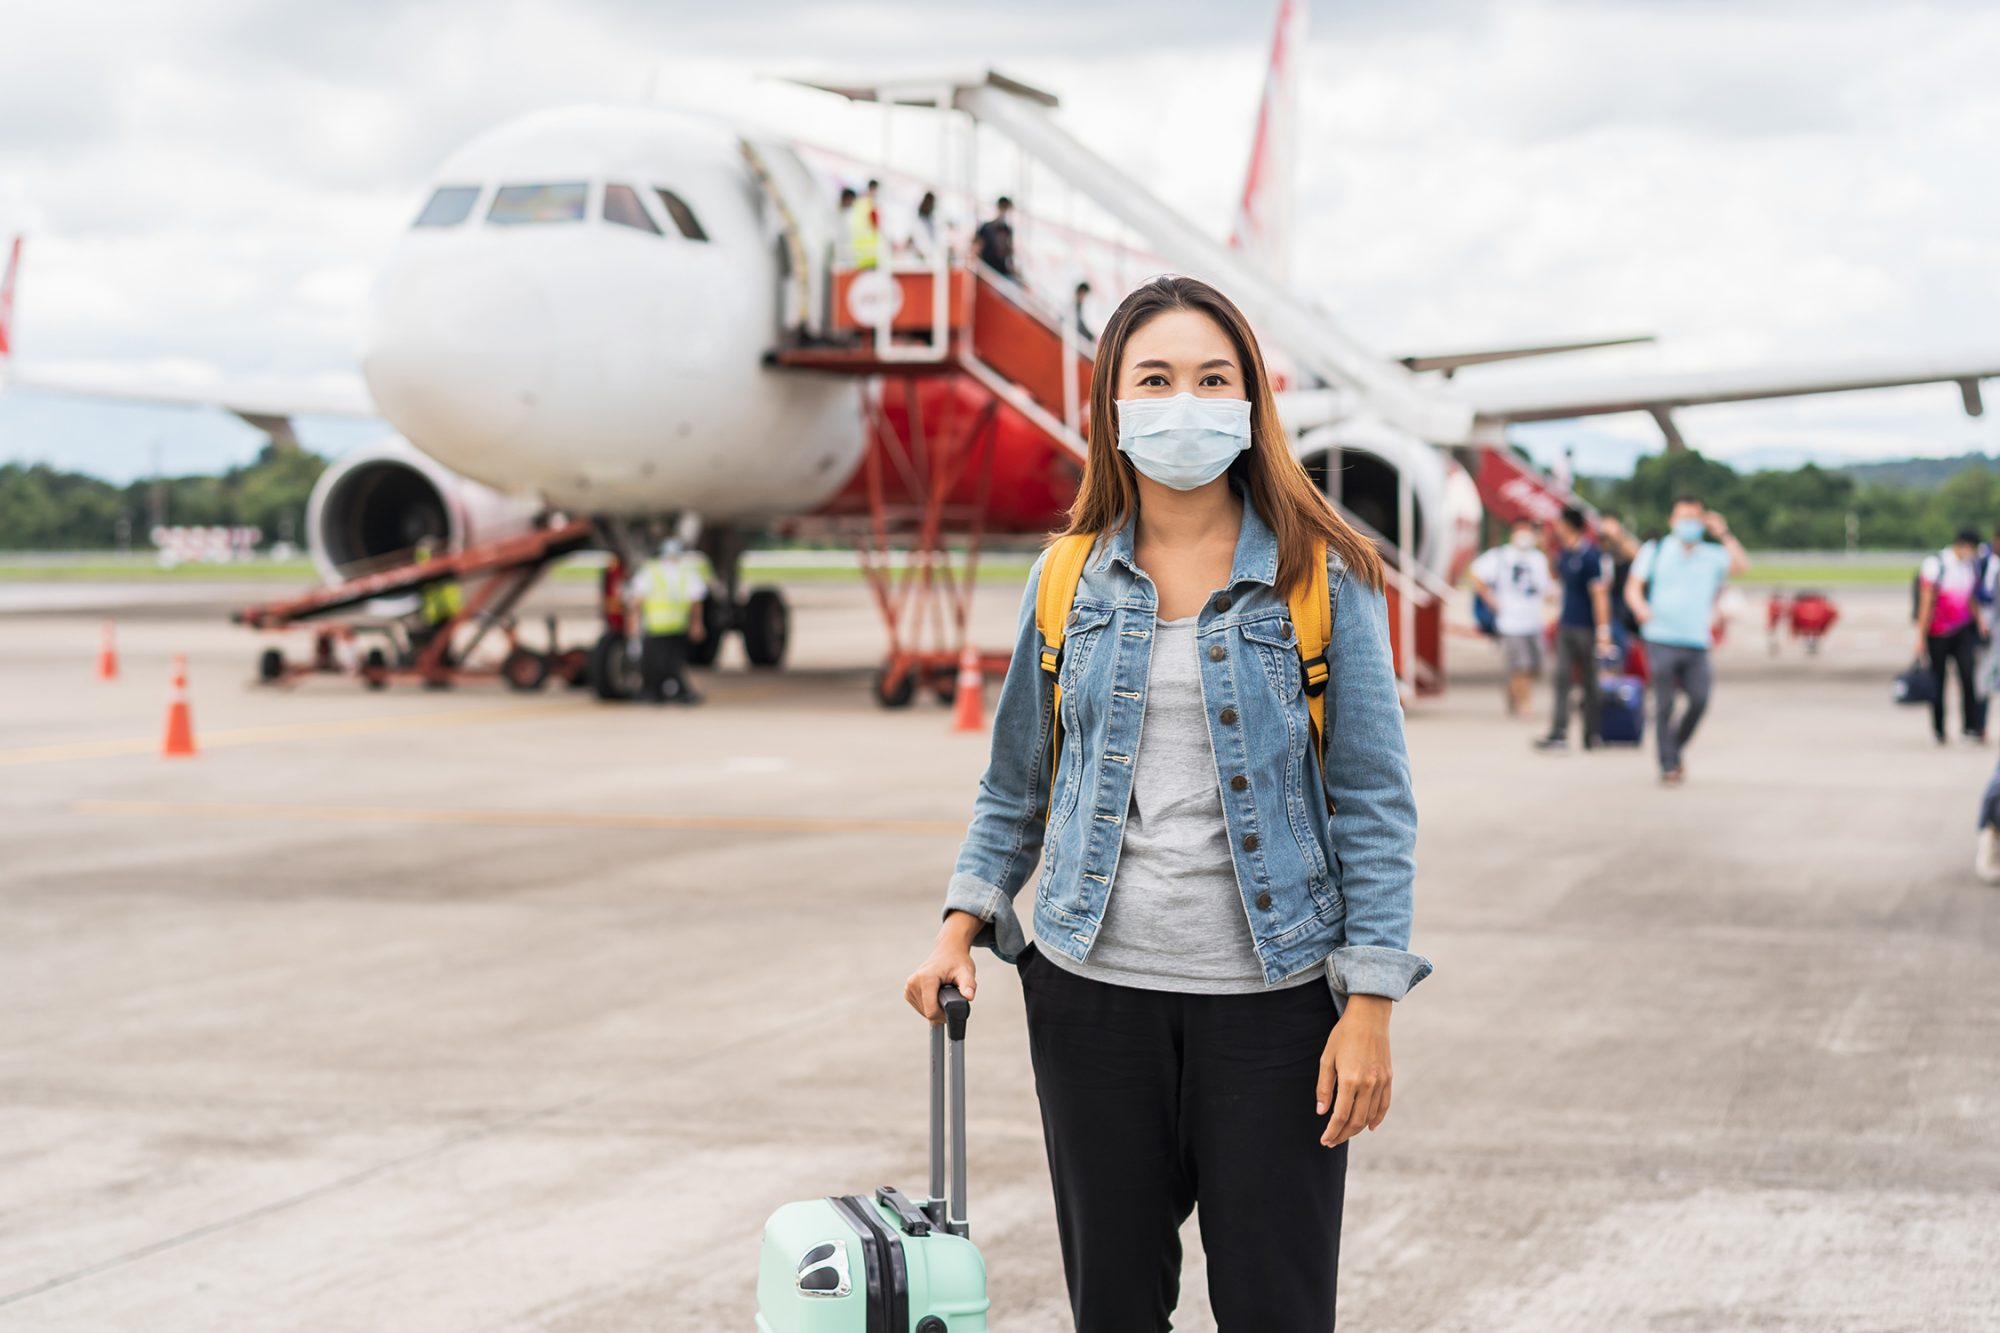 Portrait Of Woman Wearing Mask Standing On Airport